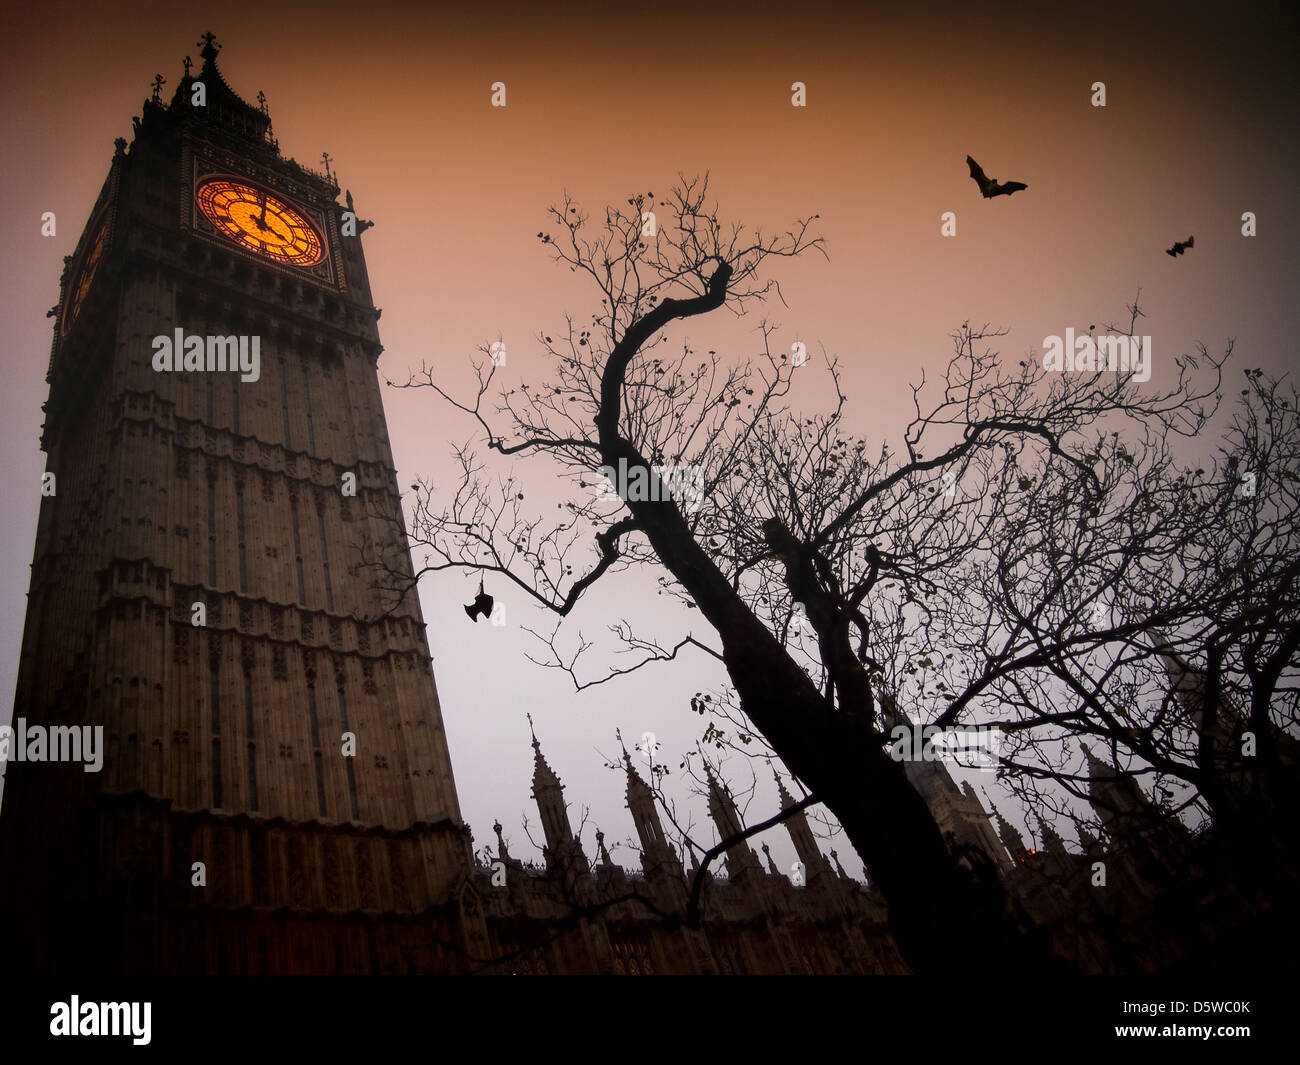 La spooky tour de l'horloge de Westminster avec un arbre nu et flying bats Photo Stock